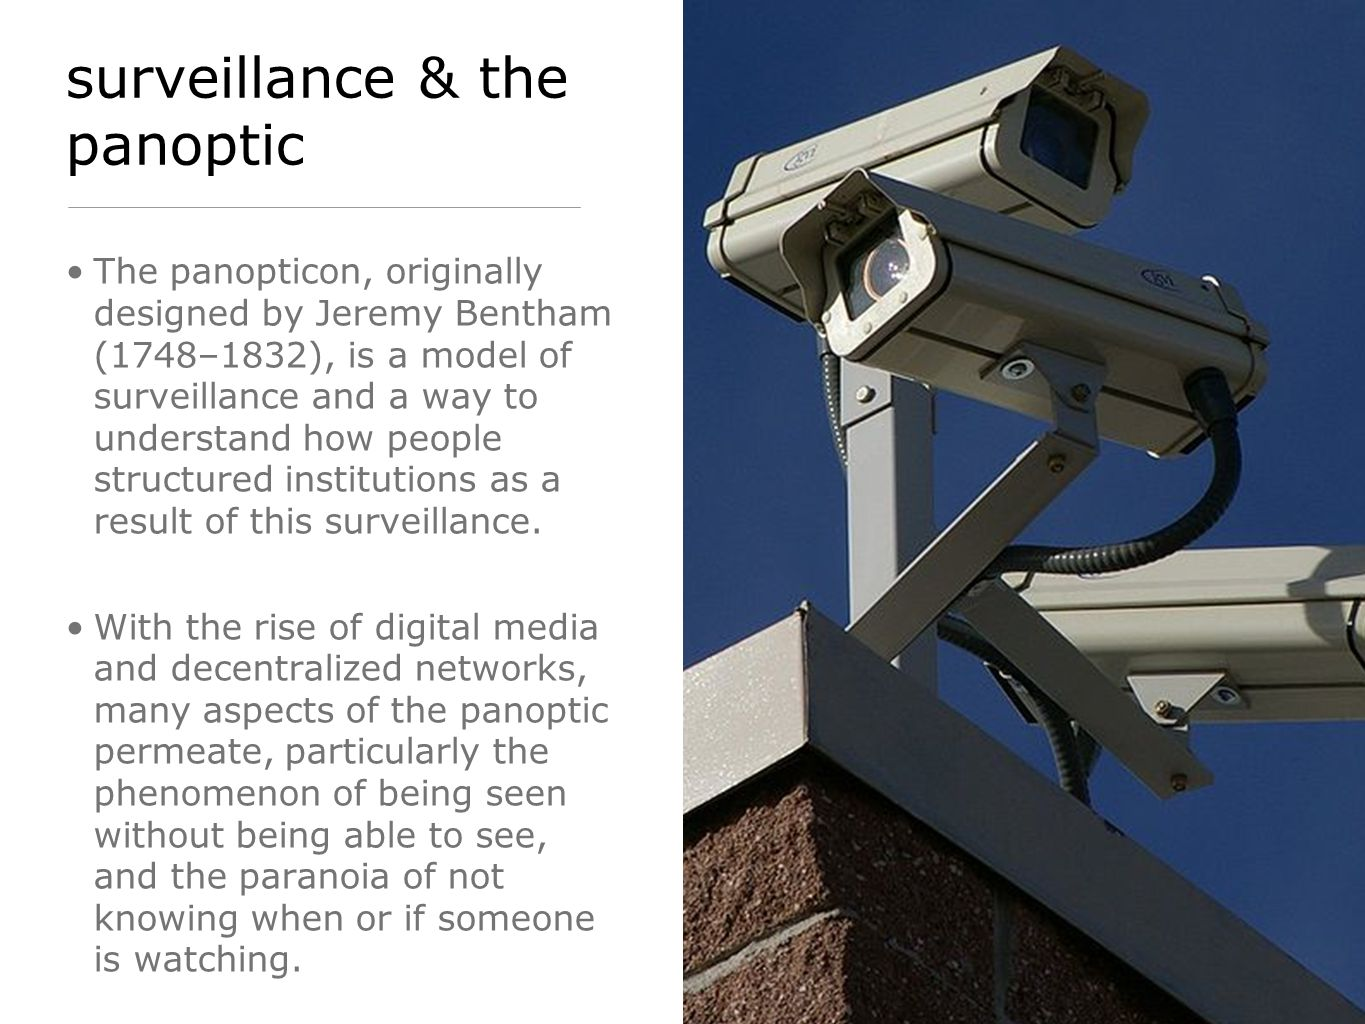 surveillance & the panoptic The panopticon, originally designed by Jeremy Bentham (1748–1832), is a model of surveillance and a way to understand how people structured institutions as a result of this surveillance.